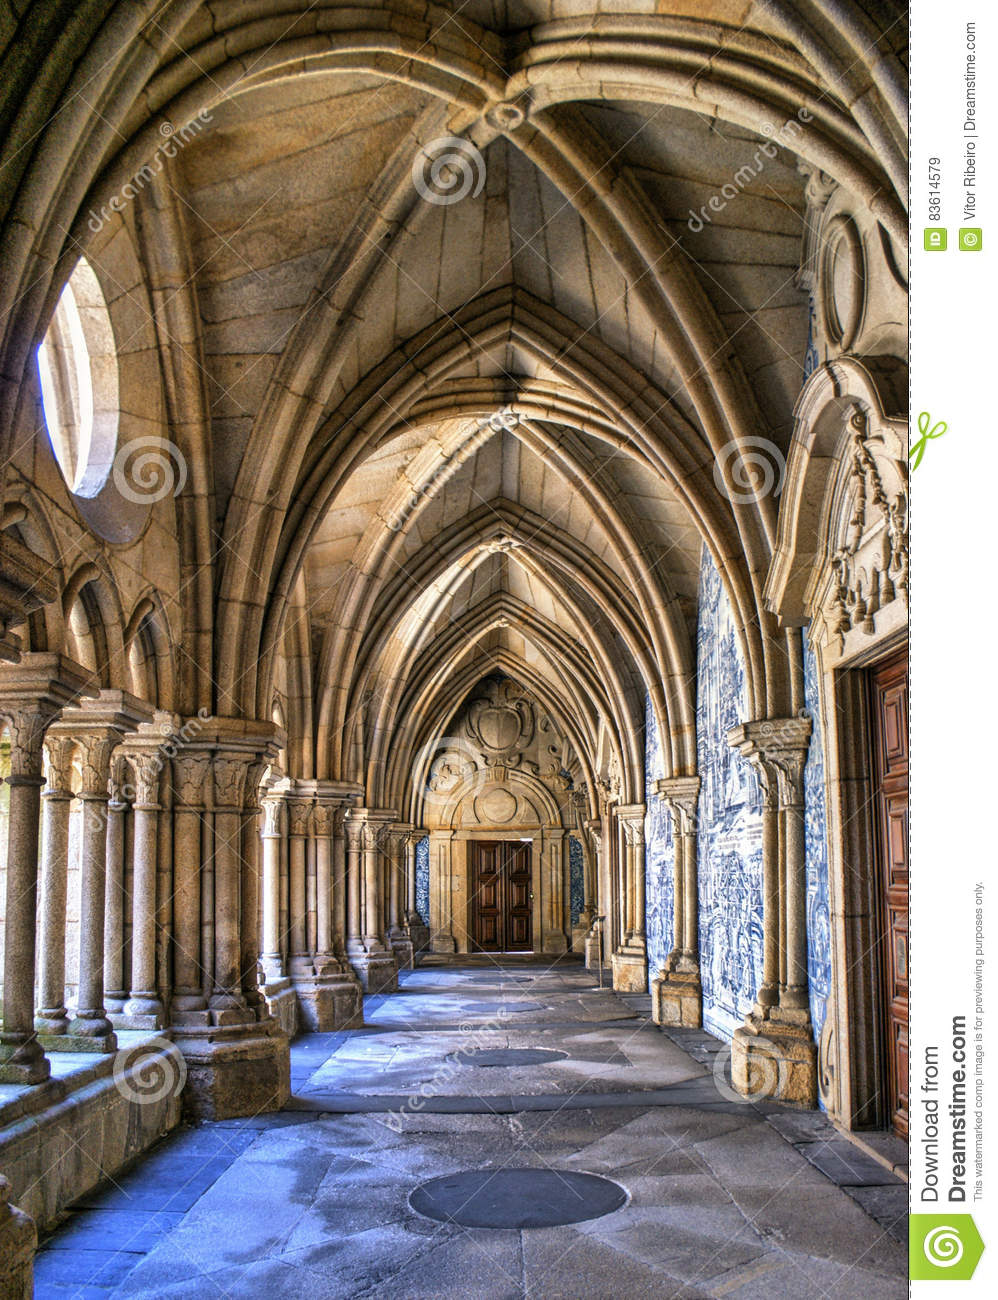 Gothic cloister of the cathedral of Porto